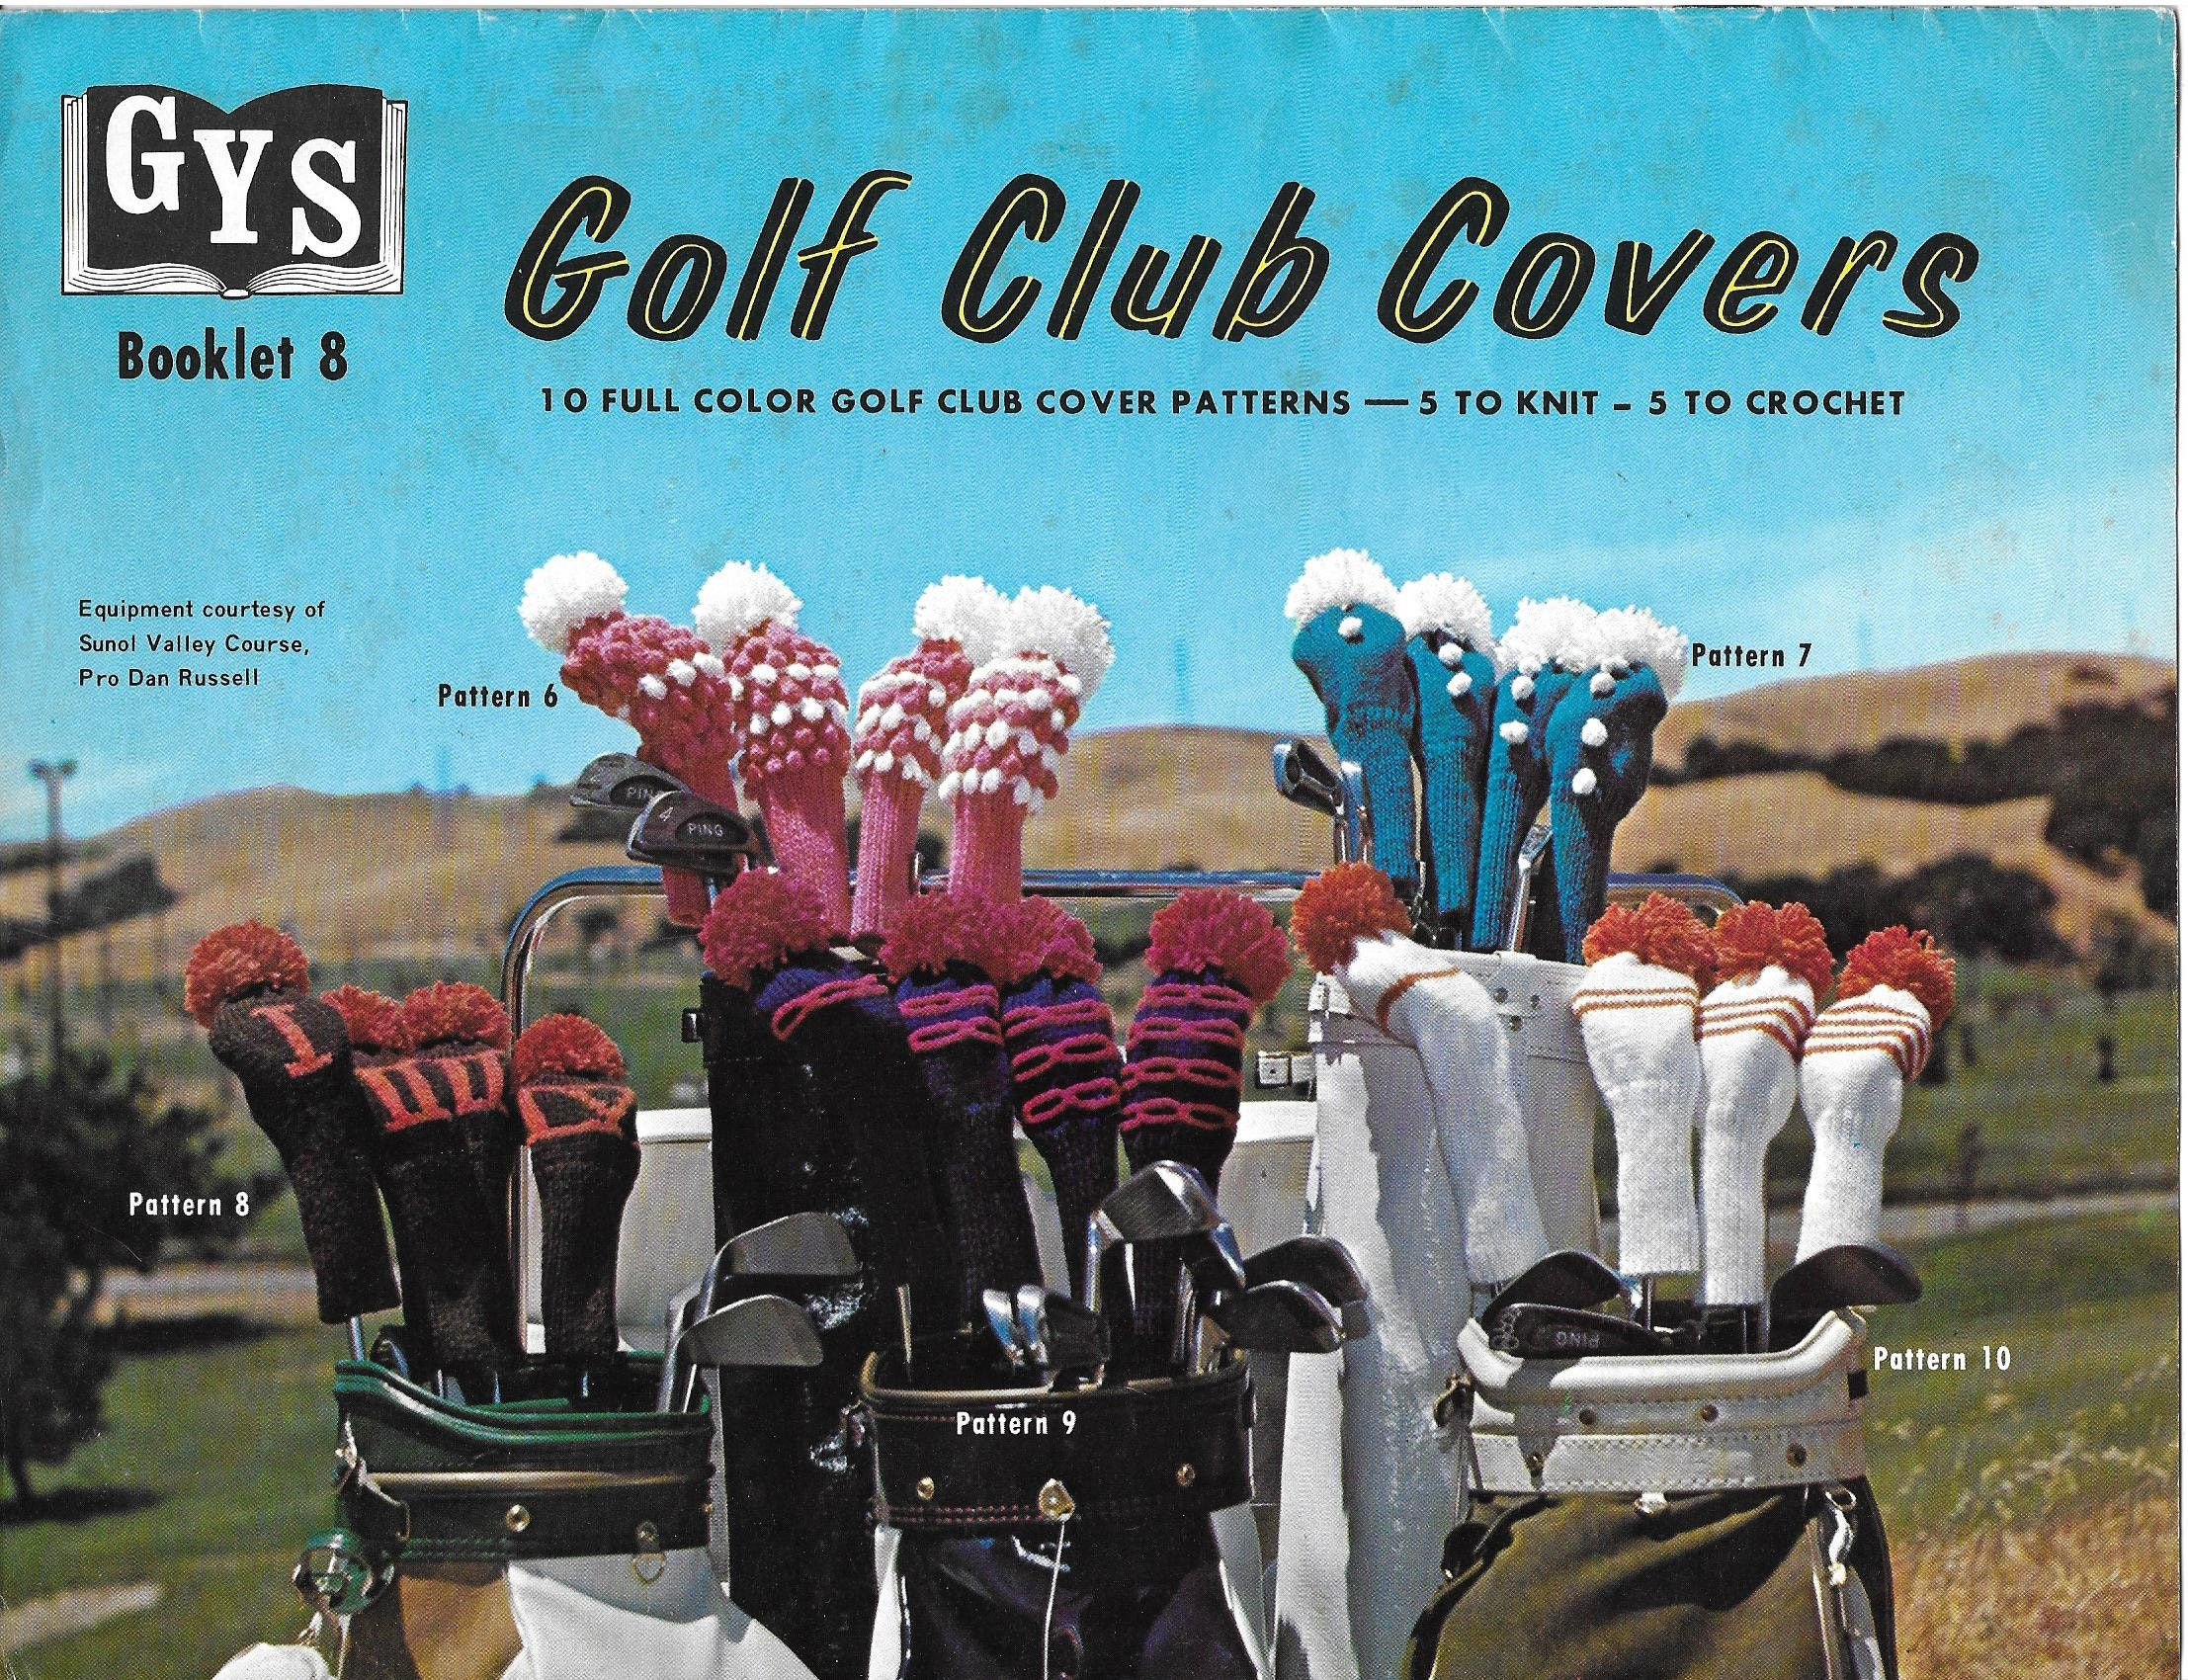 Vintage Golf Club Covers Knit and Crochet Patterns 5 to Knit 5 to ...